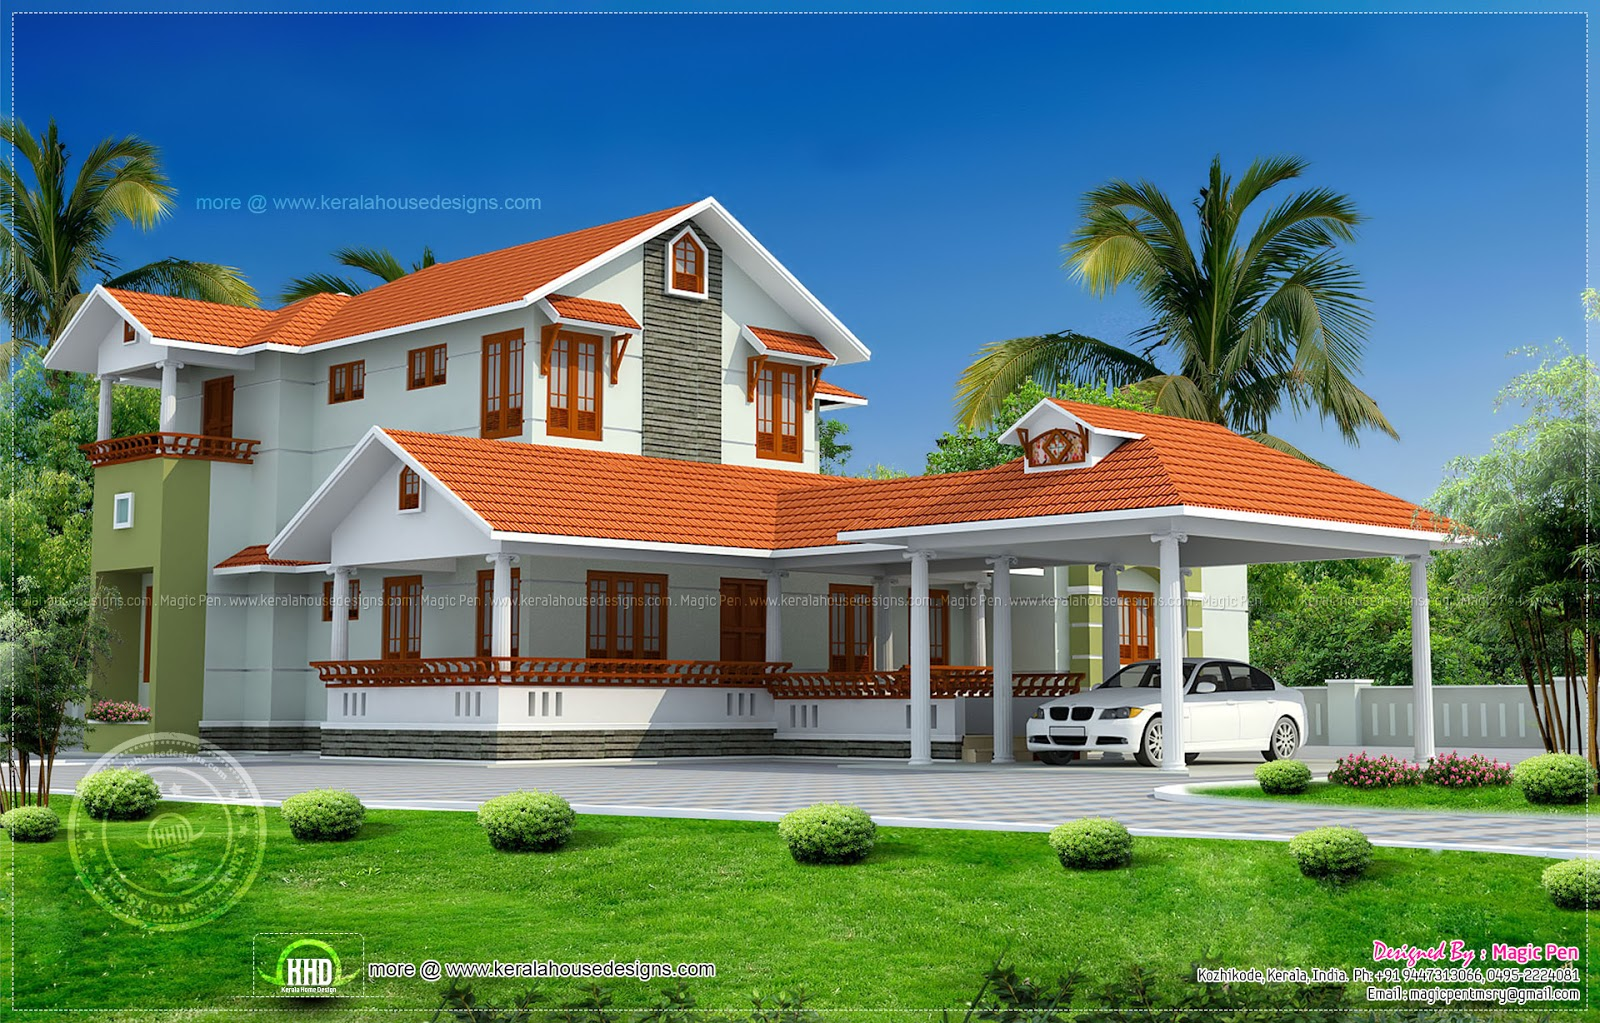 Kerala model double storied house kerala home design and for Kerala house model plan